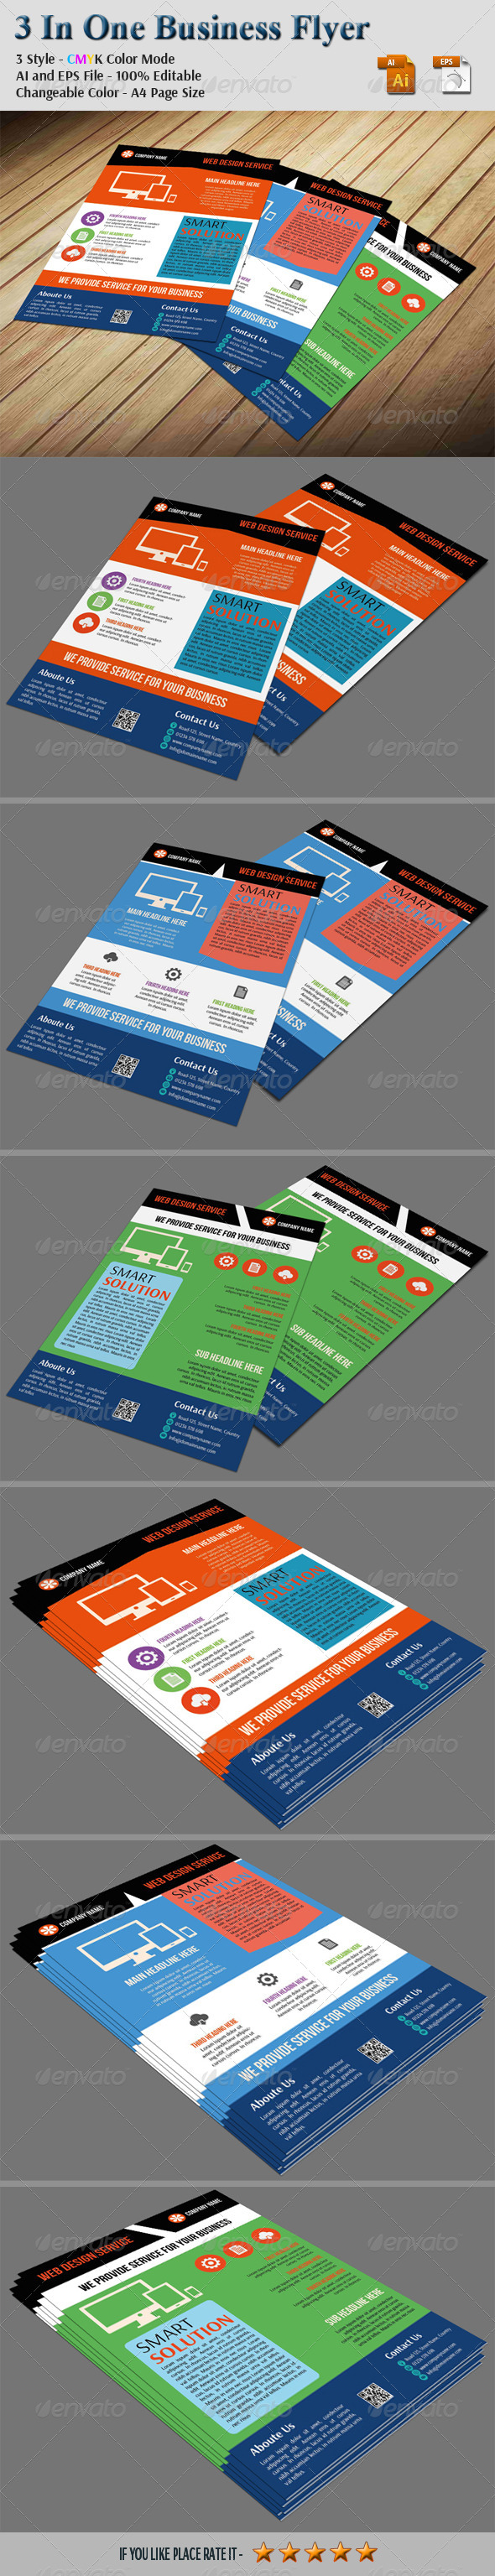 GraphicRiver 3 In One Business Flyer 6855826